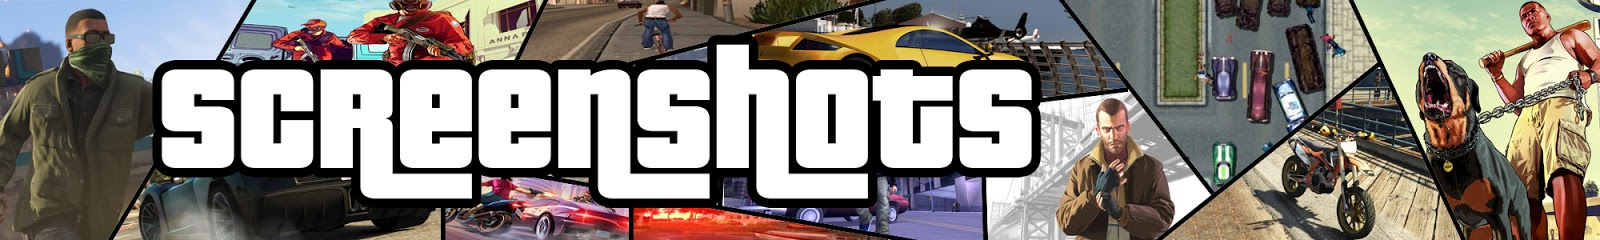 Grand Theft Auto 1997 (GTA 1) Free Download Full Version For PC (MS